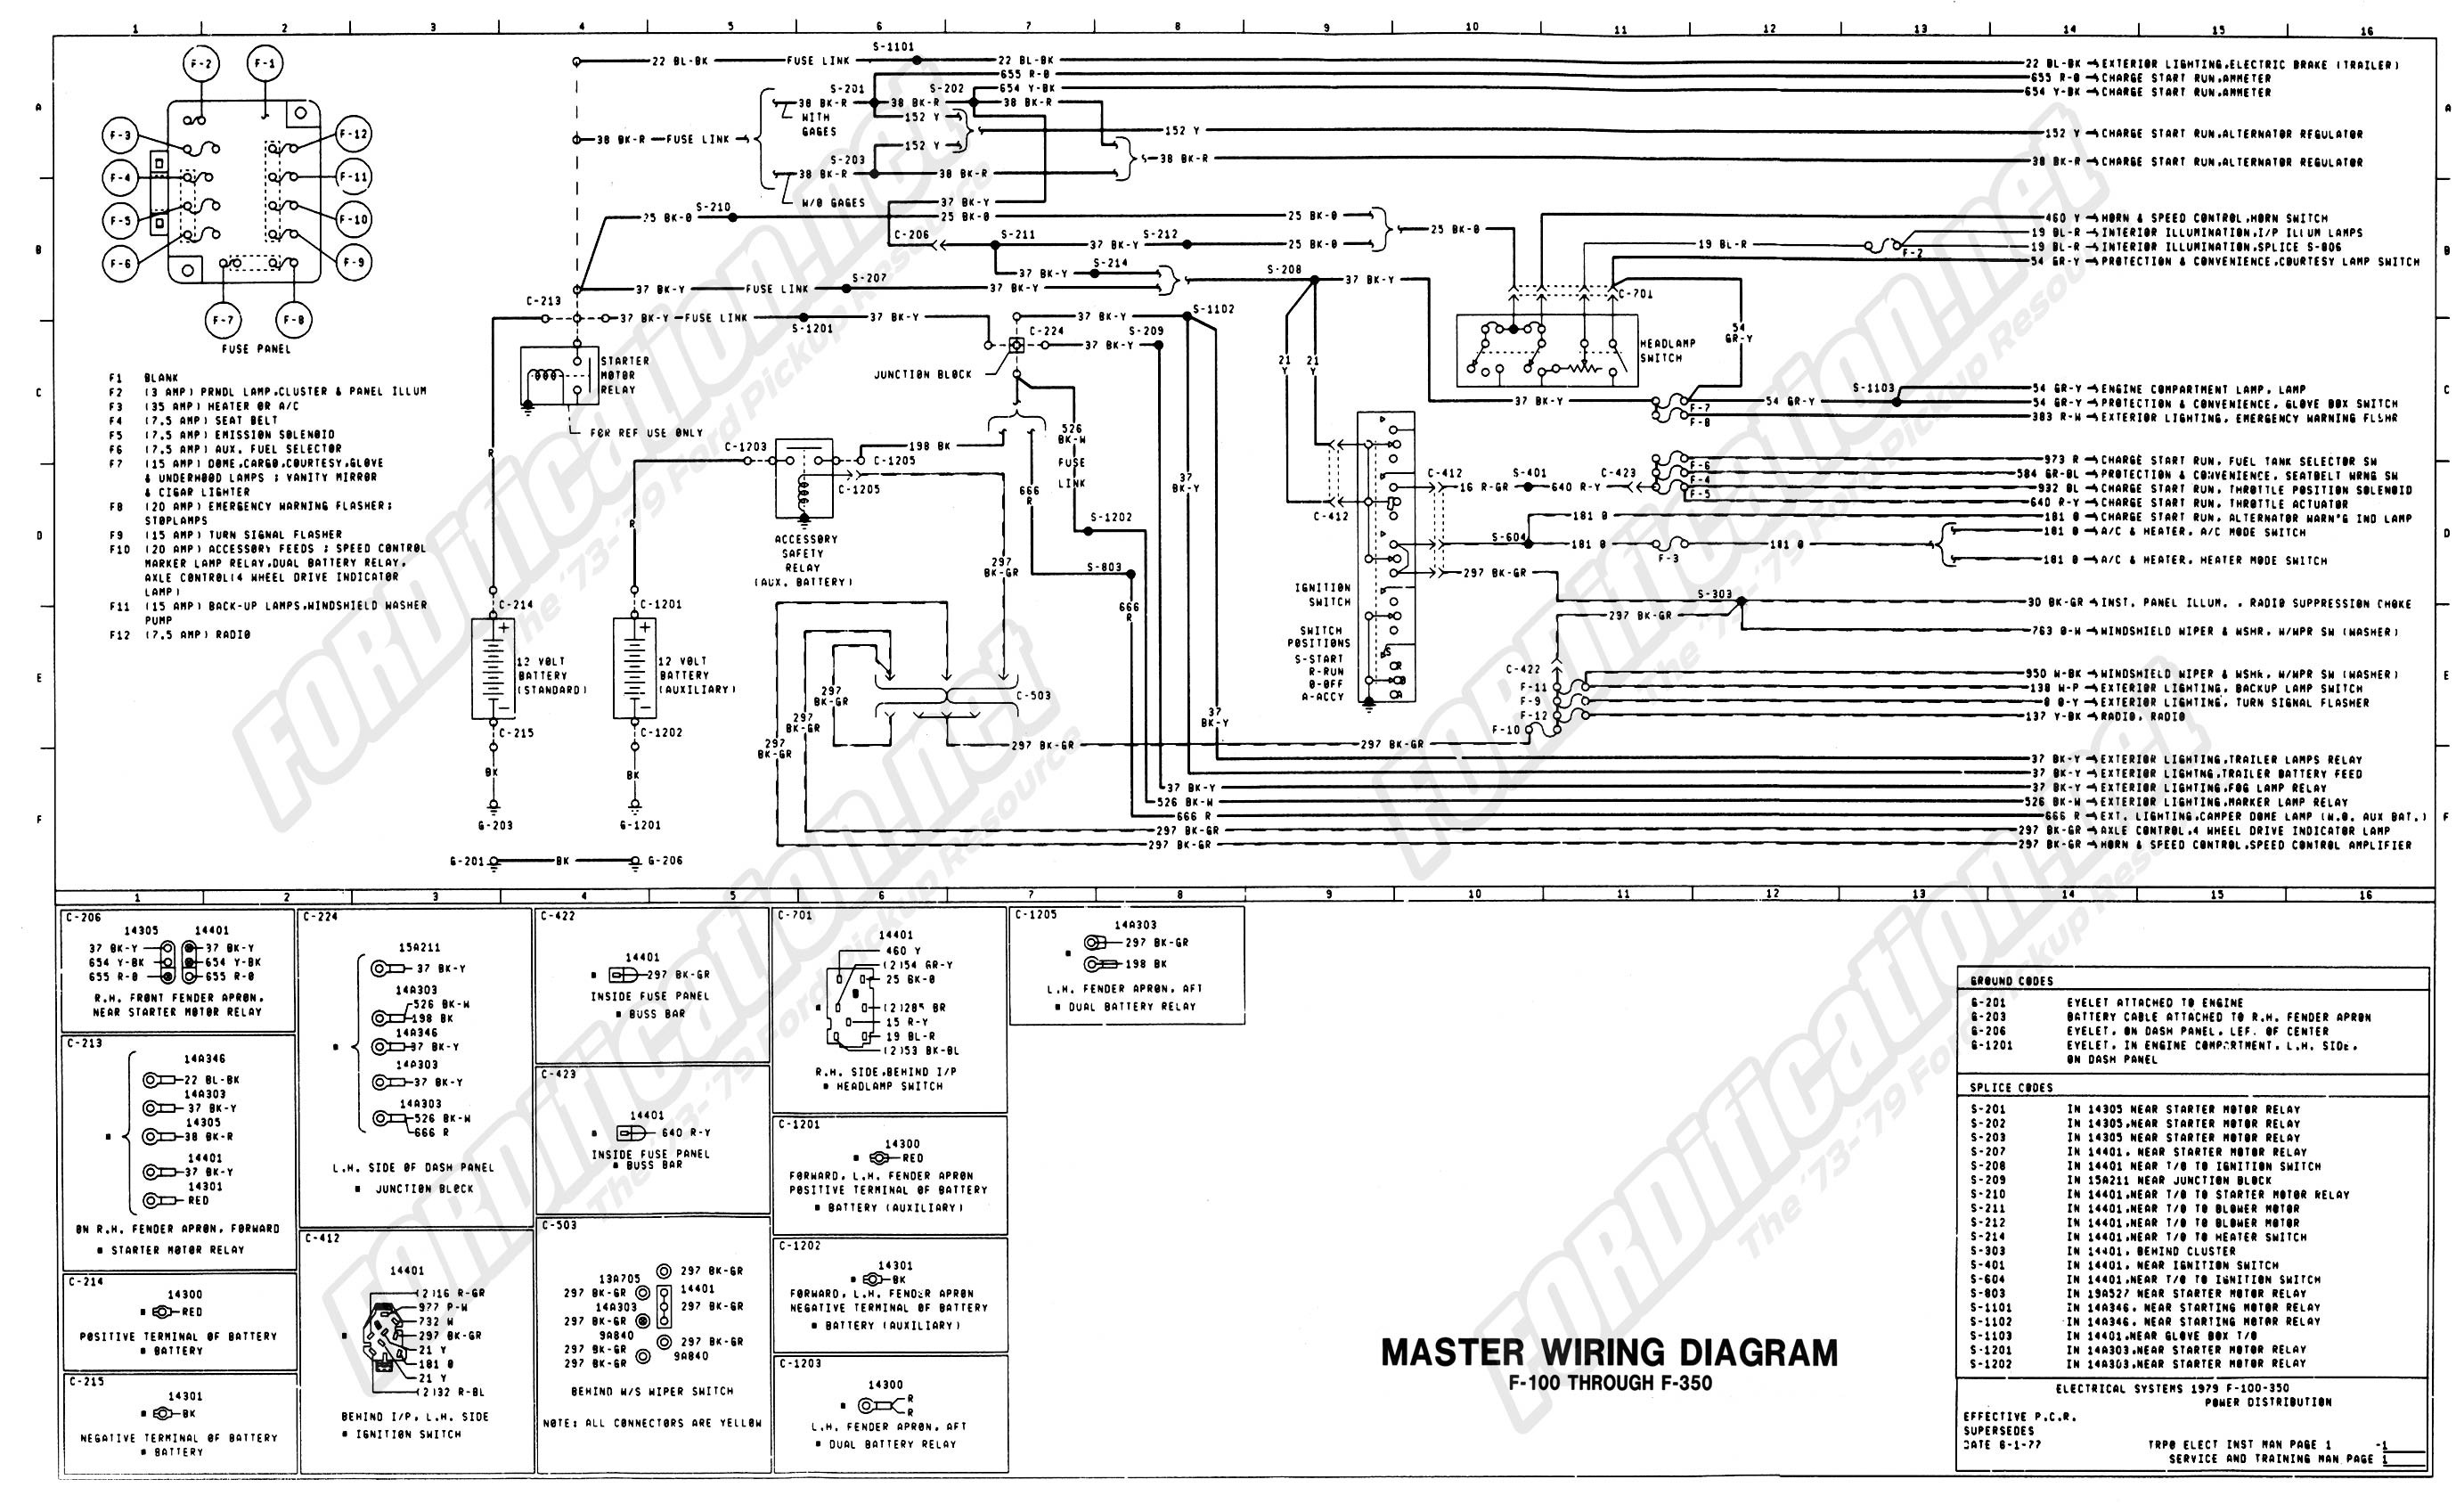 1997 ford Explorer Engine Diagram I Need the Wiring